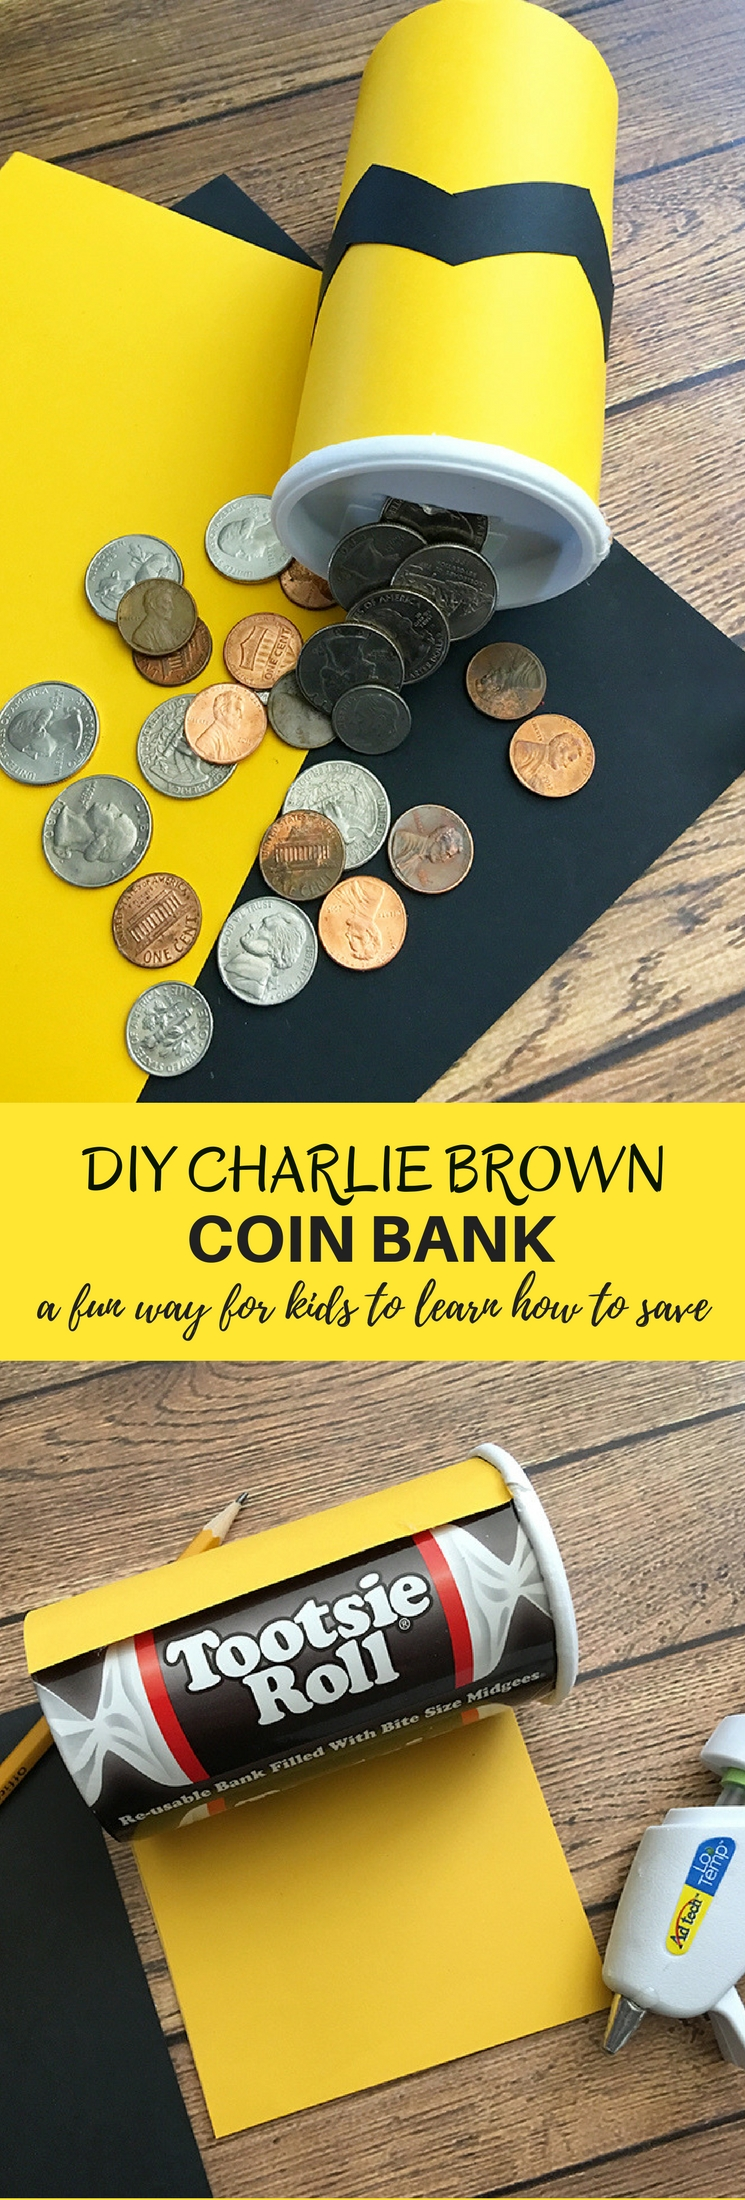 DIY Charlie Brown Coin Bank is perfect for teaching your child how to save. Super easy and fun to make using simple craft supplies.